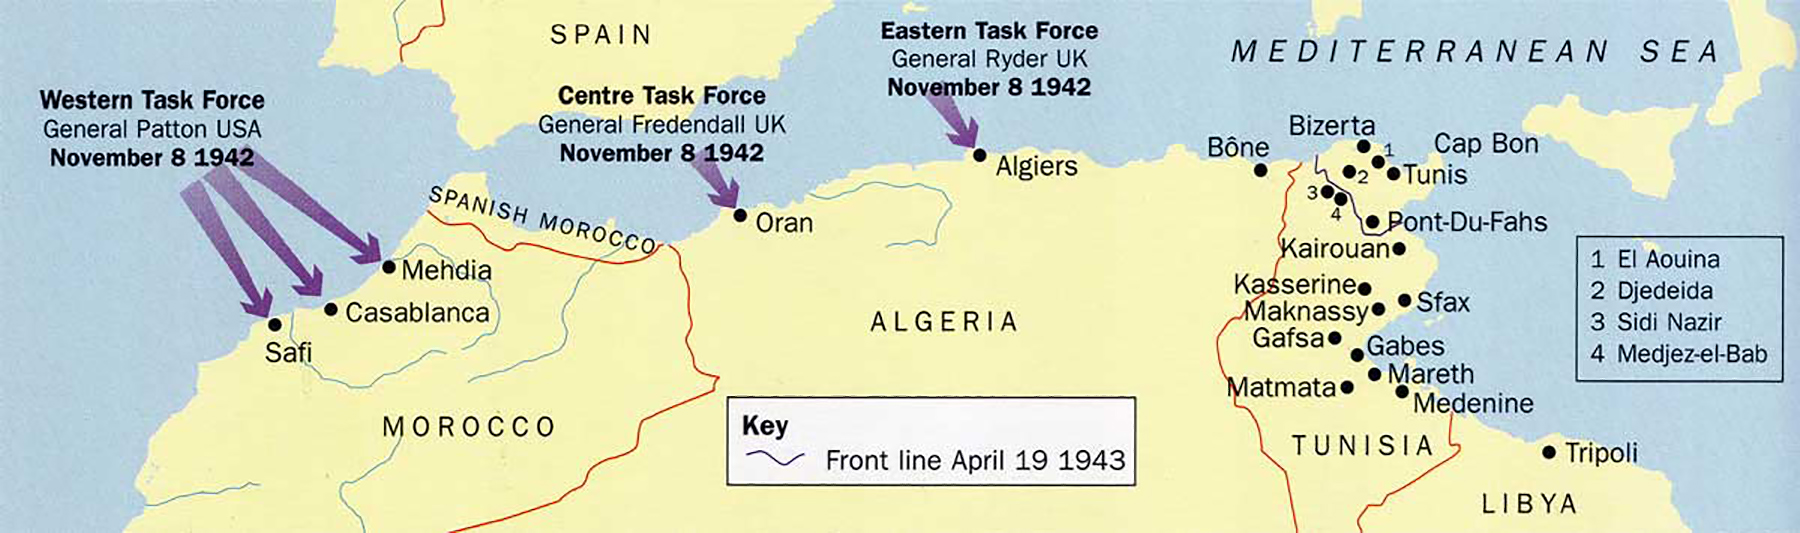 Artwork showing a map of North Africa Operation Torch 0A